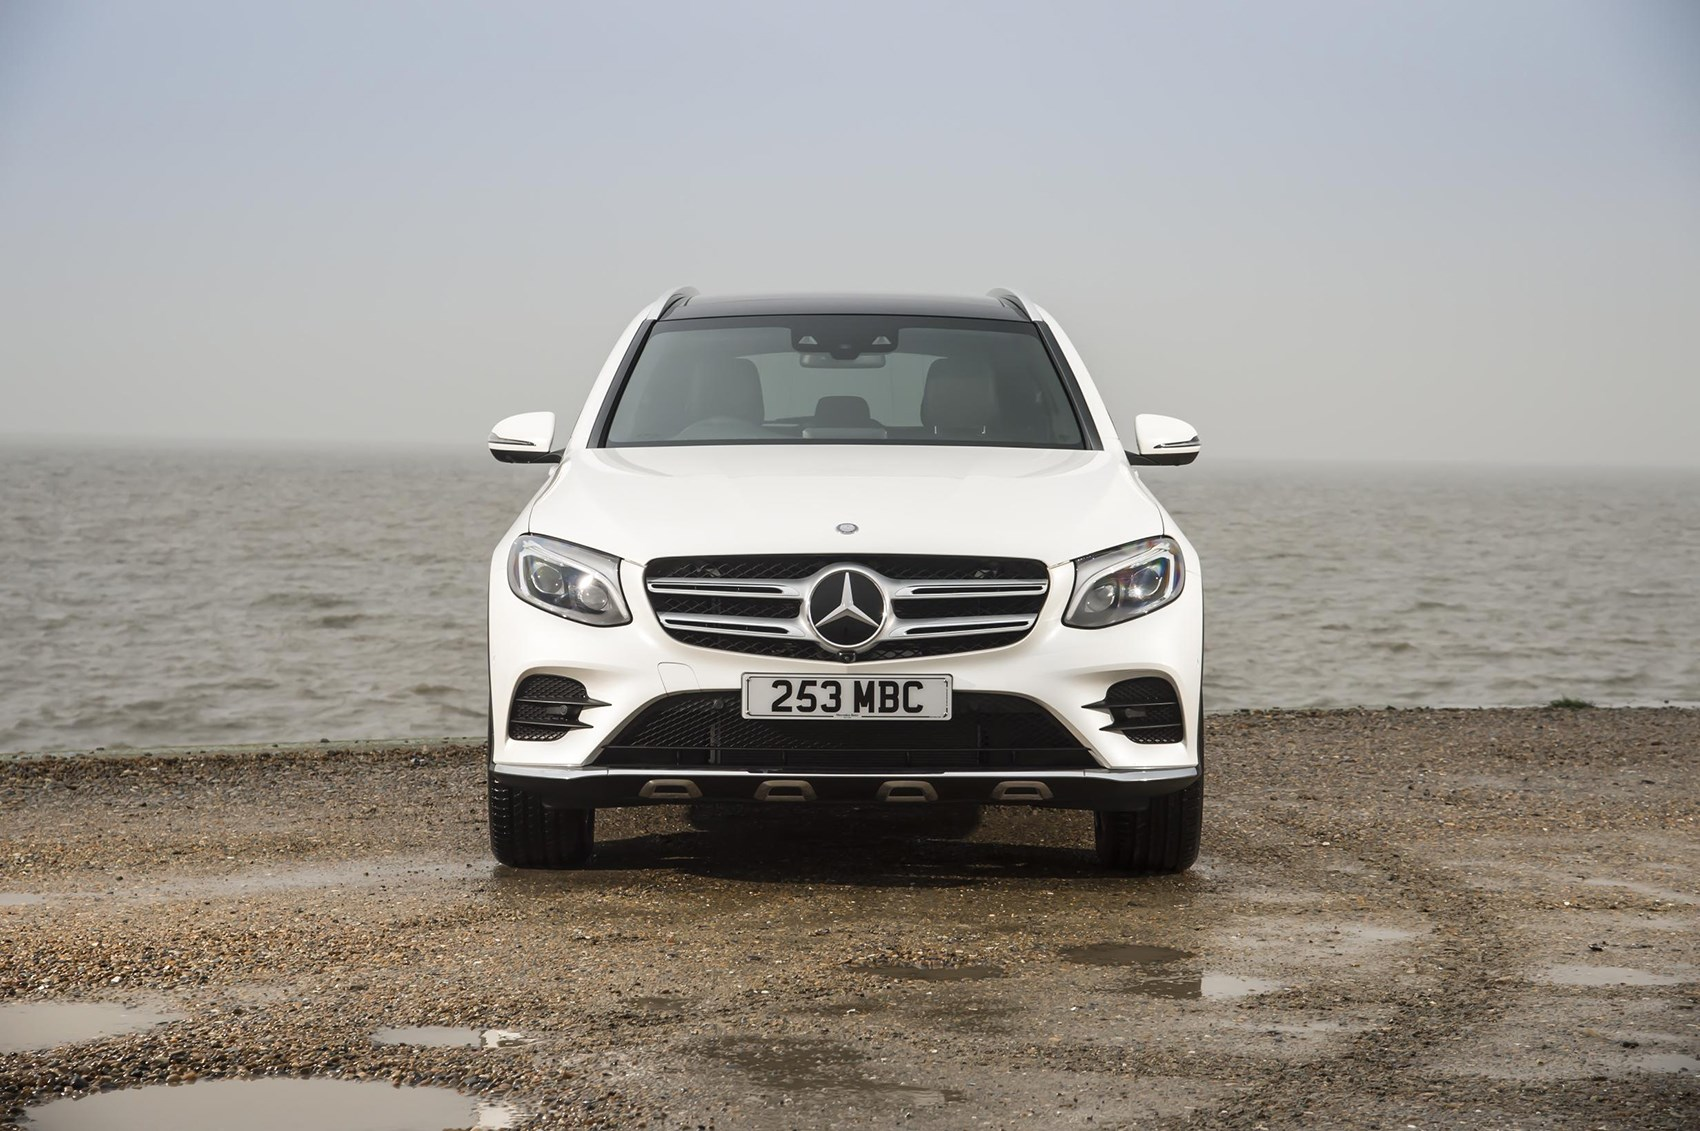 Mercedes GLC 350d: specs, photos and more in CAR's review